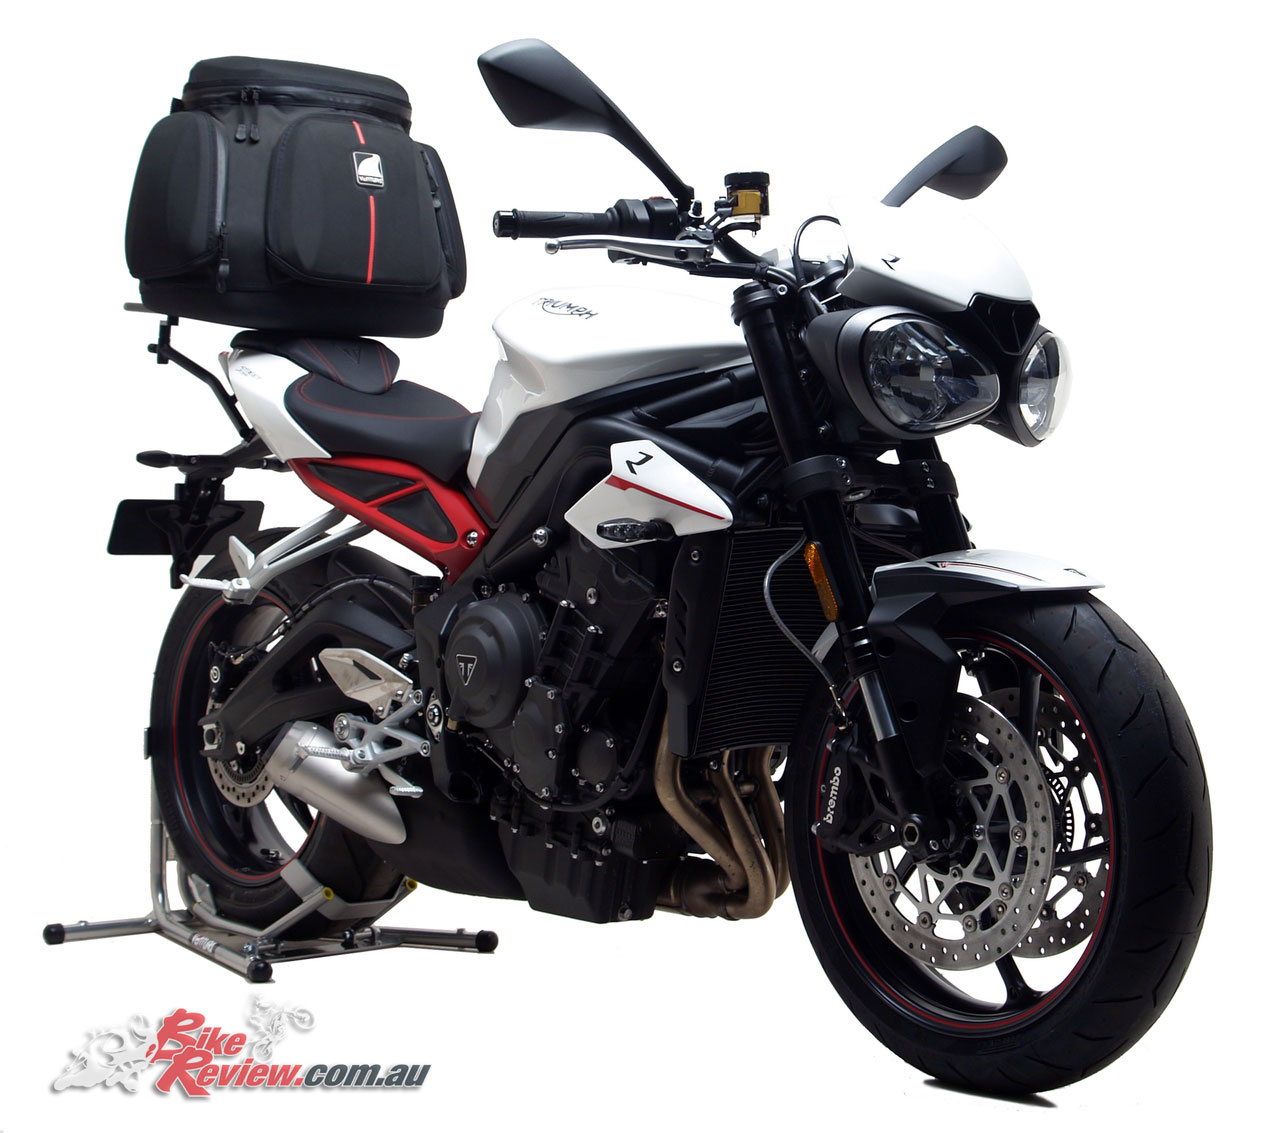 new product ventura for triumph 39 s street triple 765 bike review. Black Bedroom Furniture Sets. Home Design Ideas